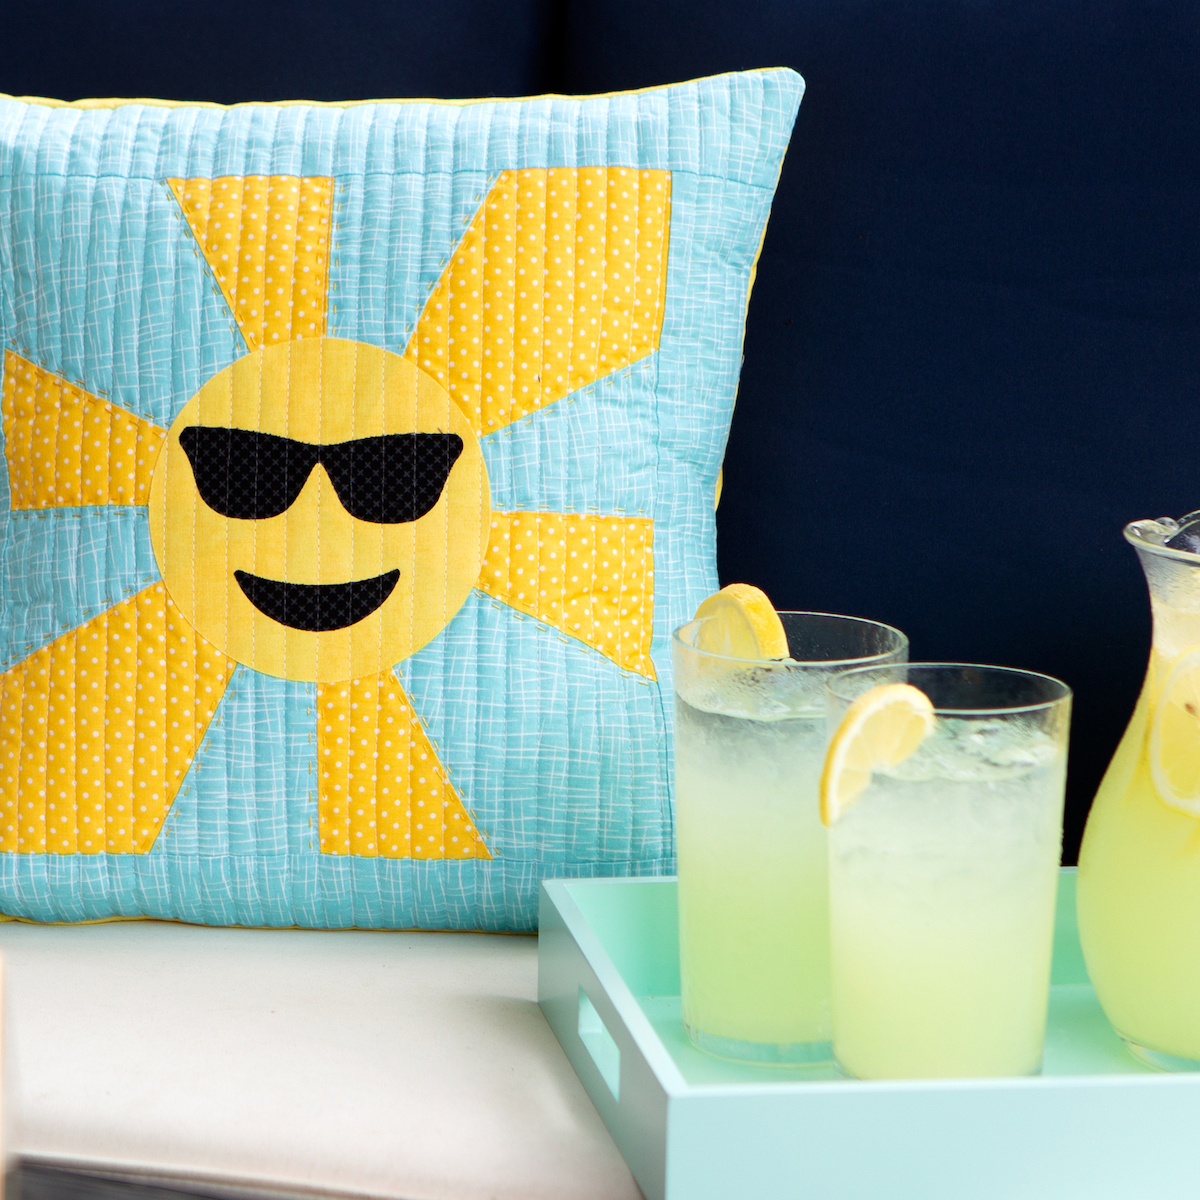 PQ11650-sunshine-emoji-pillow-lifestyle-1500x1500-blog